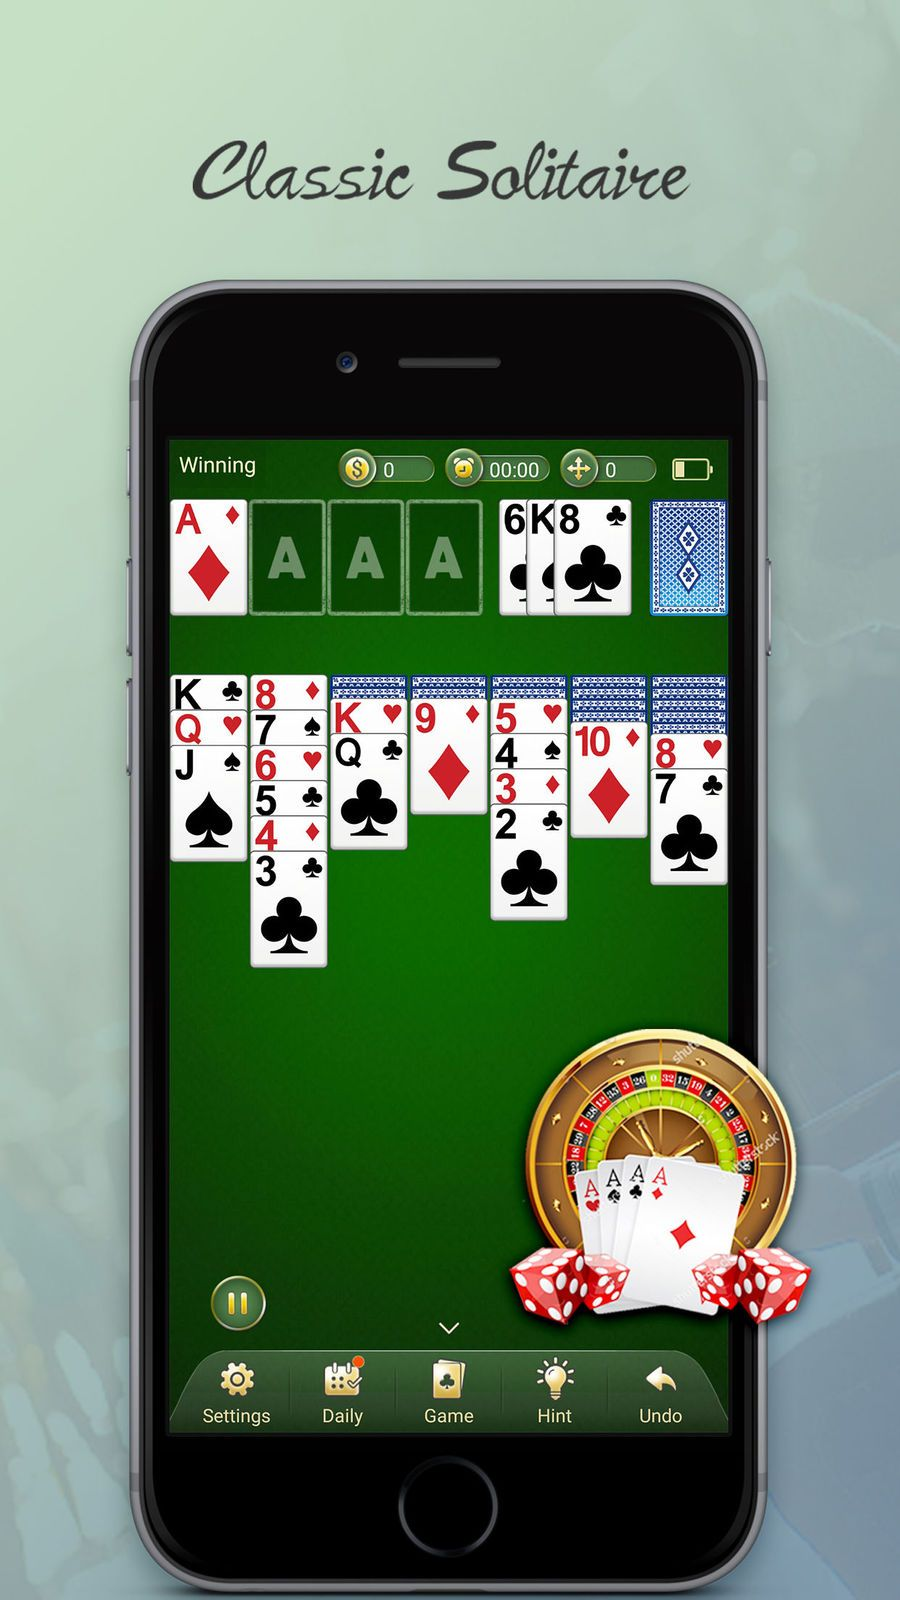 Solitaire free classic card games app fotoableapp